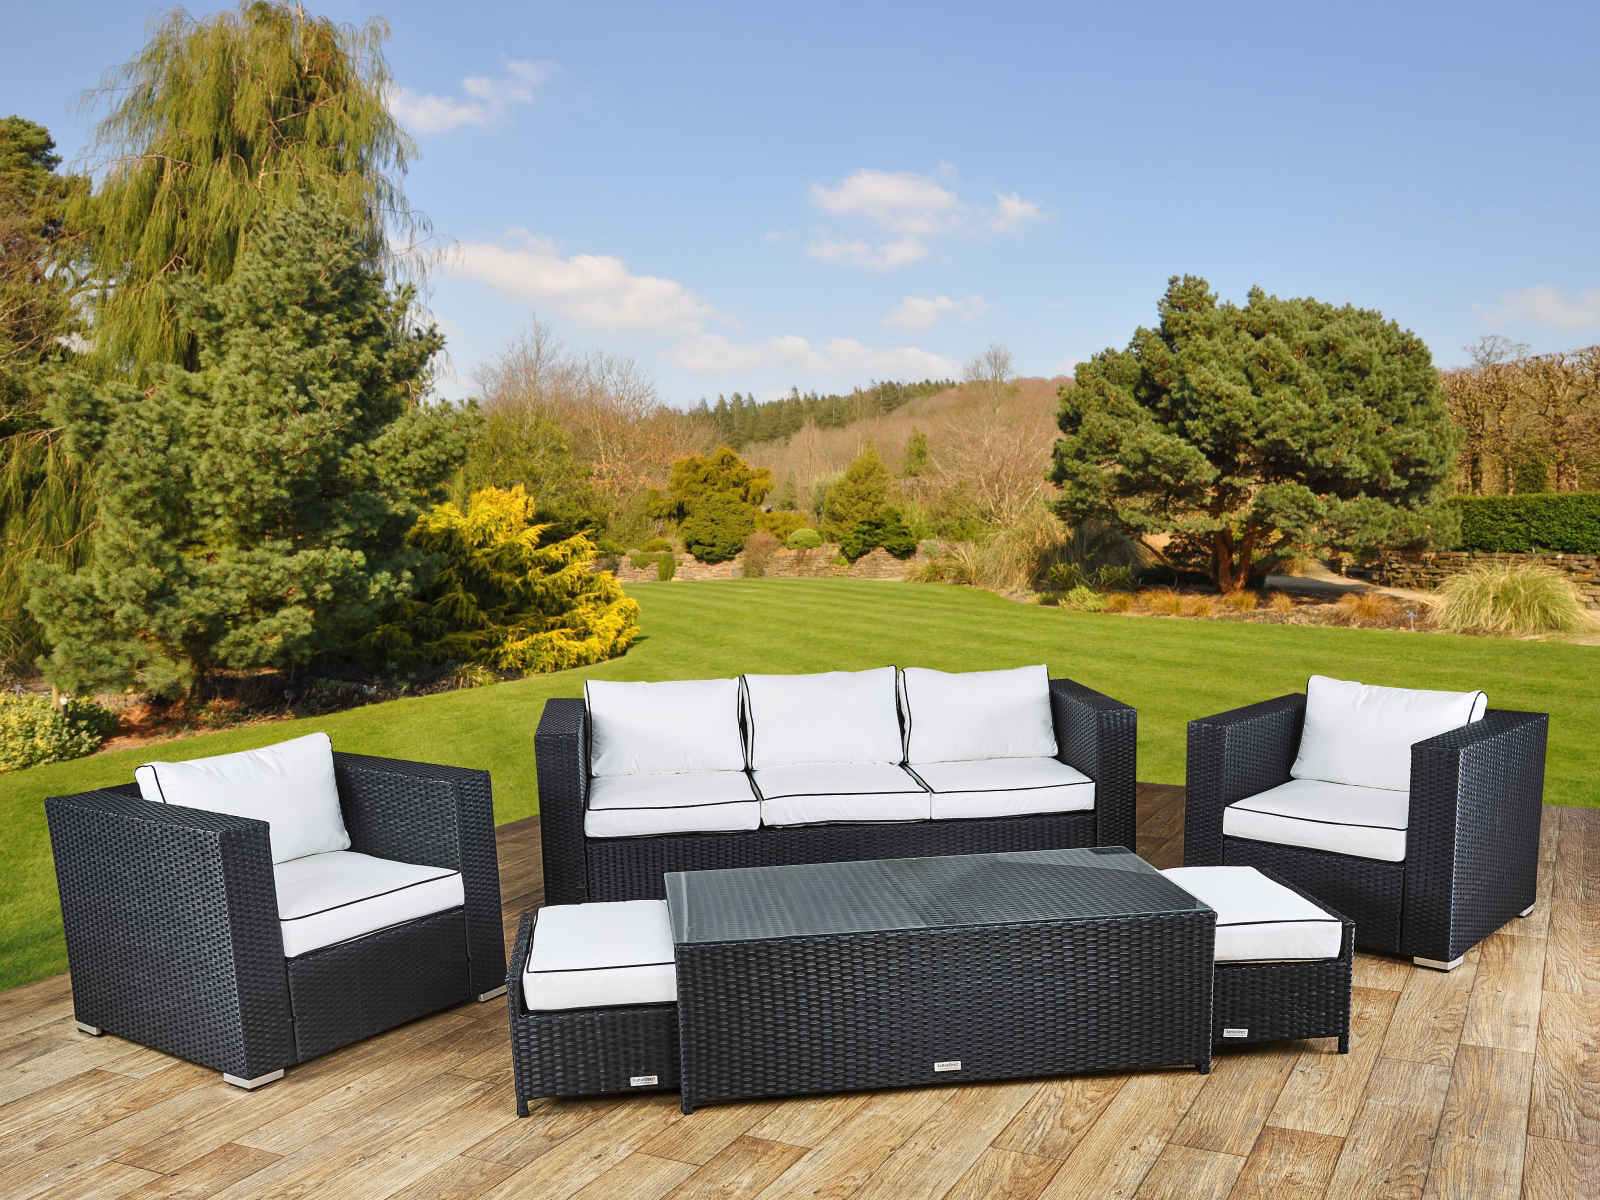 Rattan Garden Sofa Sets and Garden Seating | Rattan Furniture ...